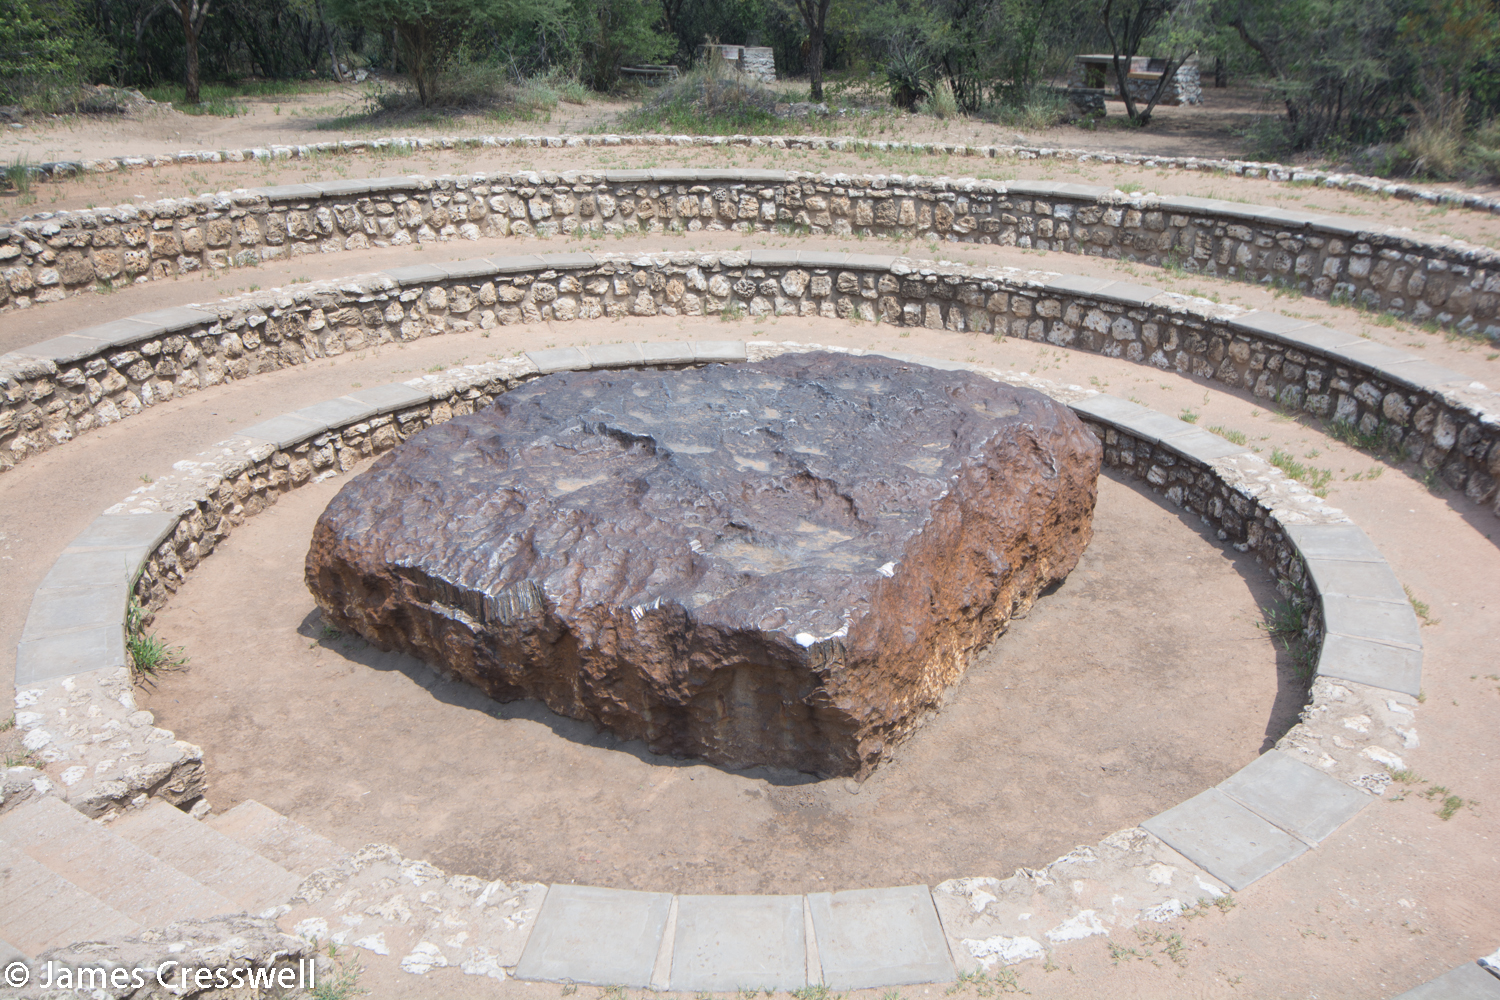 The Hoba meteorite which fell to the earth 80,000 years ago and is the largest meteorite ever found.